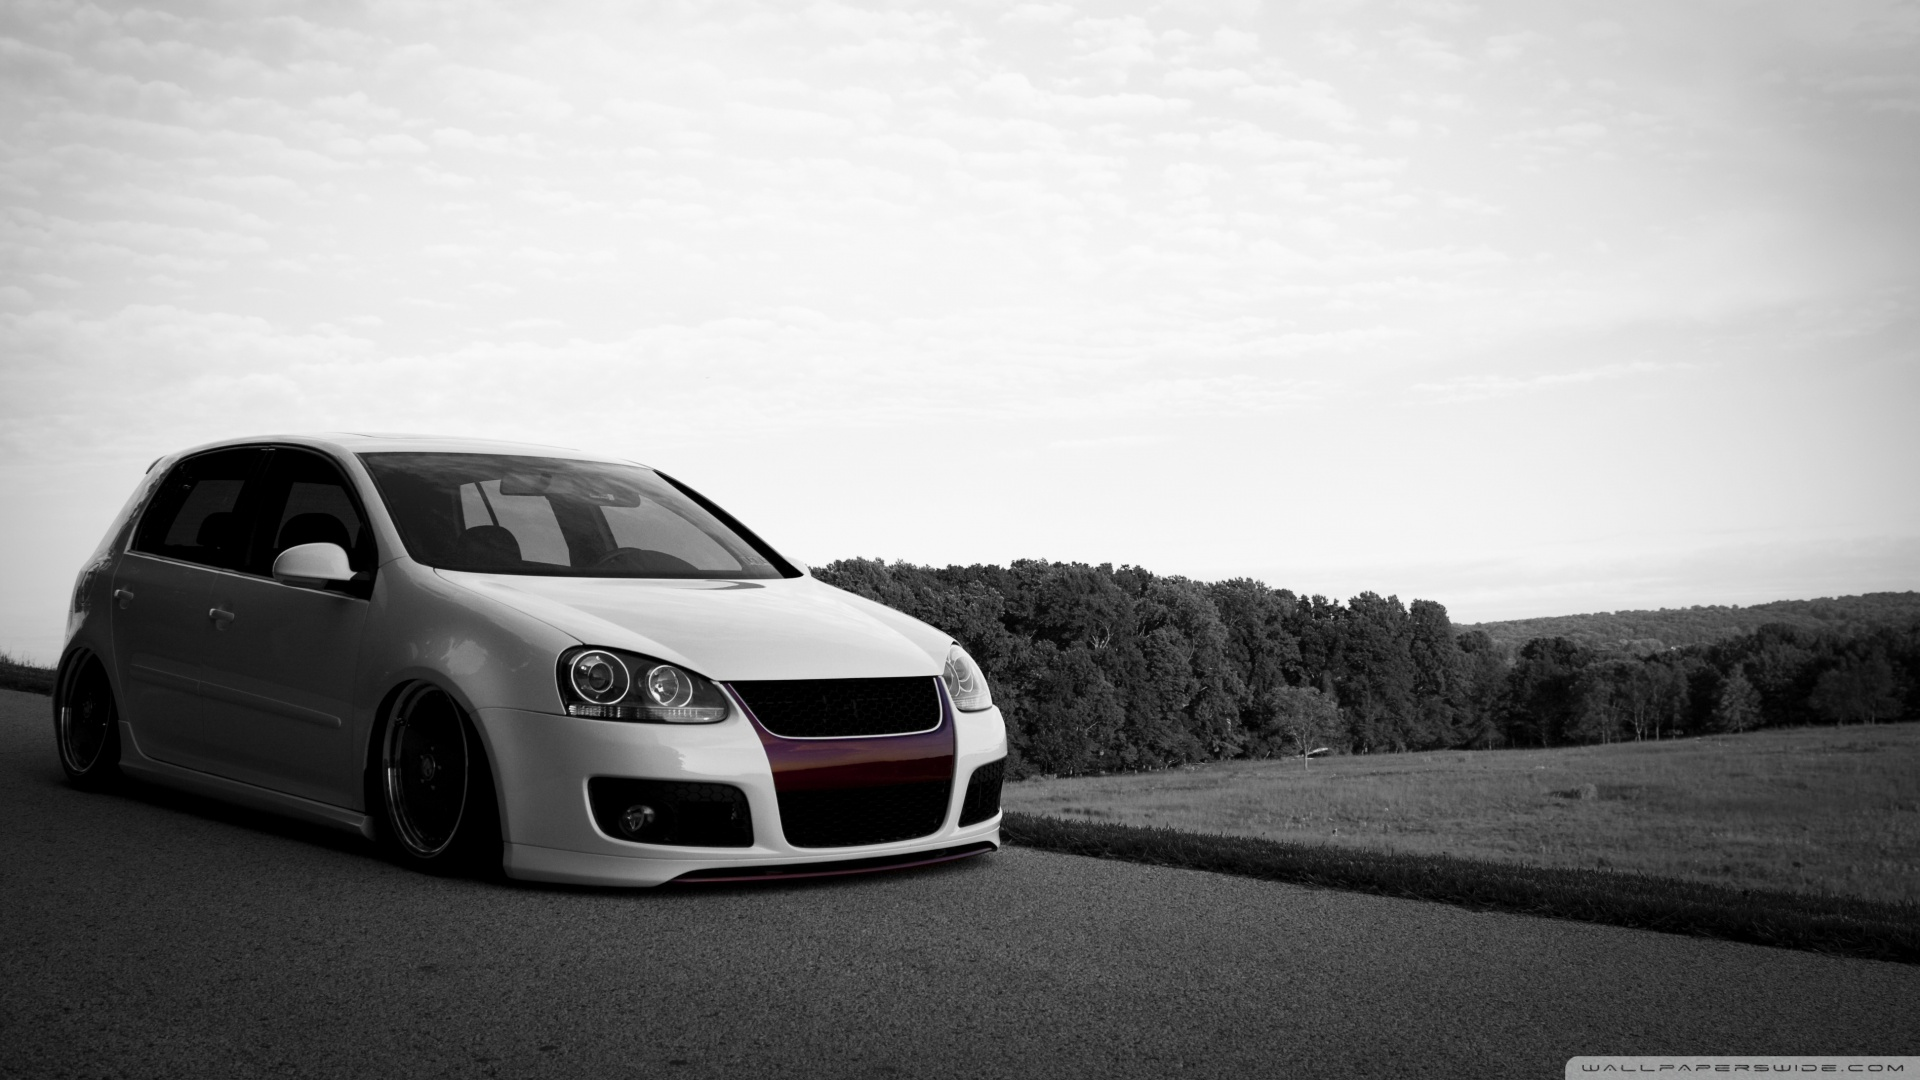 Golf 5 Wallpaper